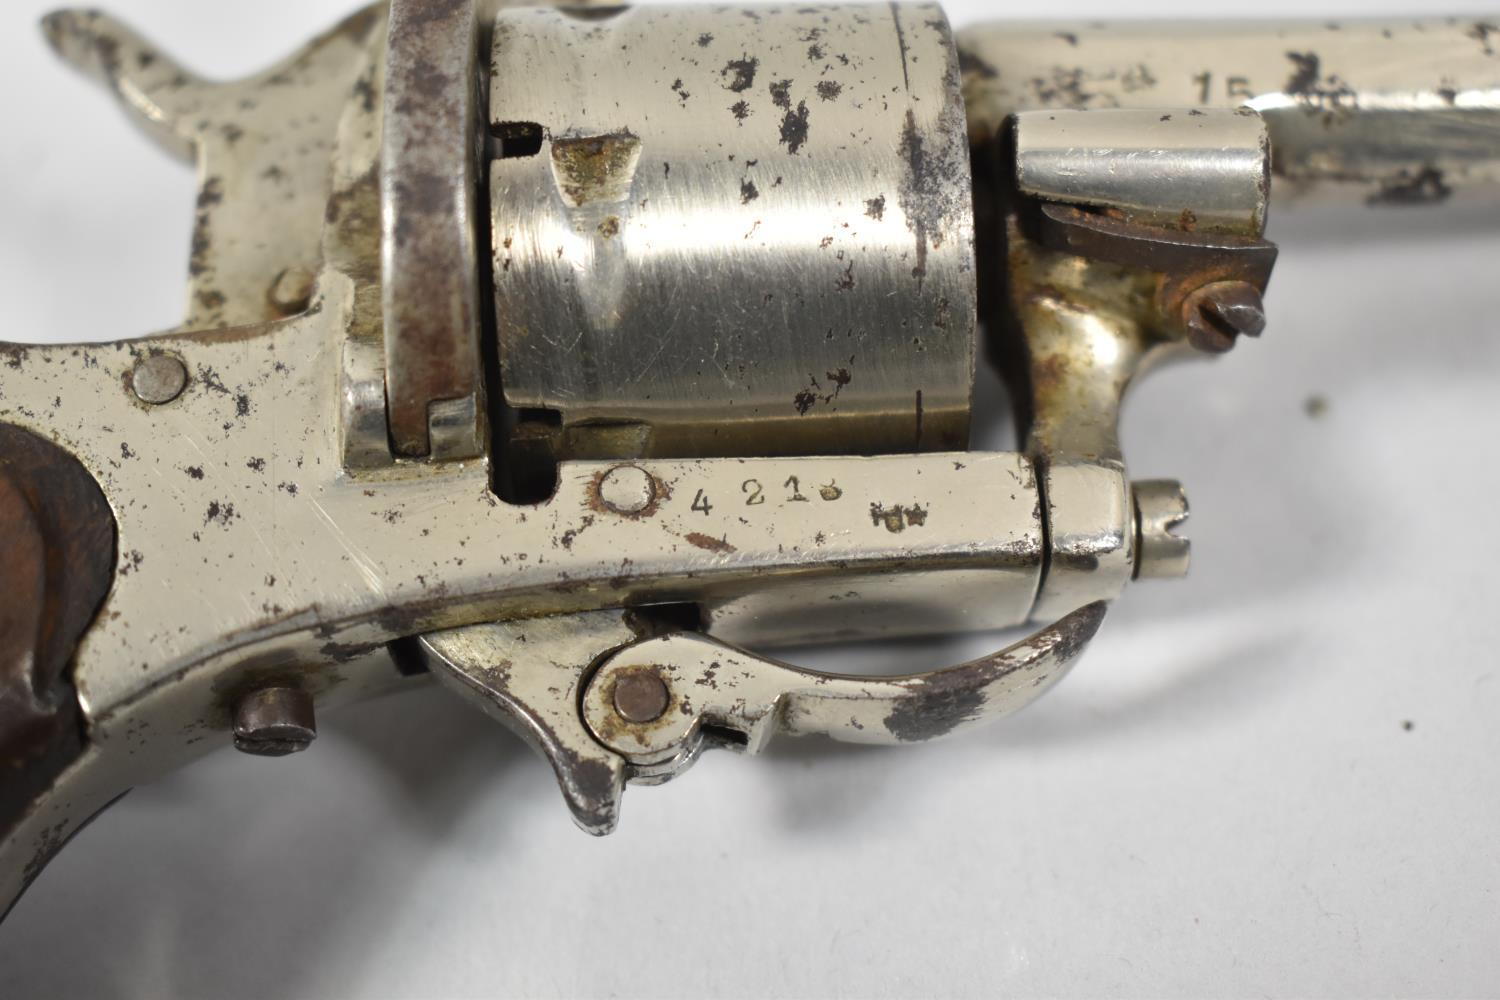 A 19th Century Belgian Rimfire Six Shot Pocket Revolver with Folding Trigger, Belgian Proof Marks - Image 2 of 2